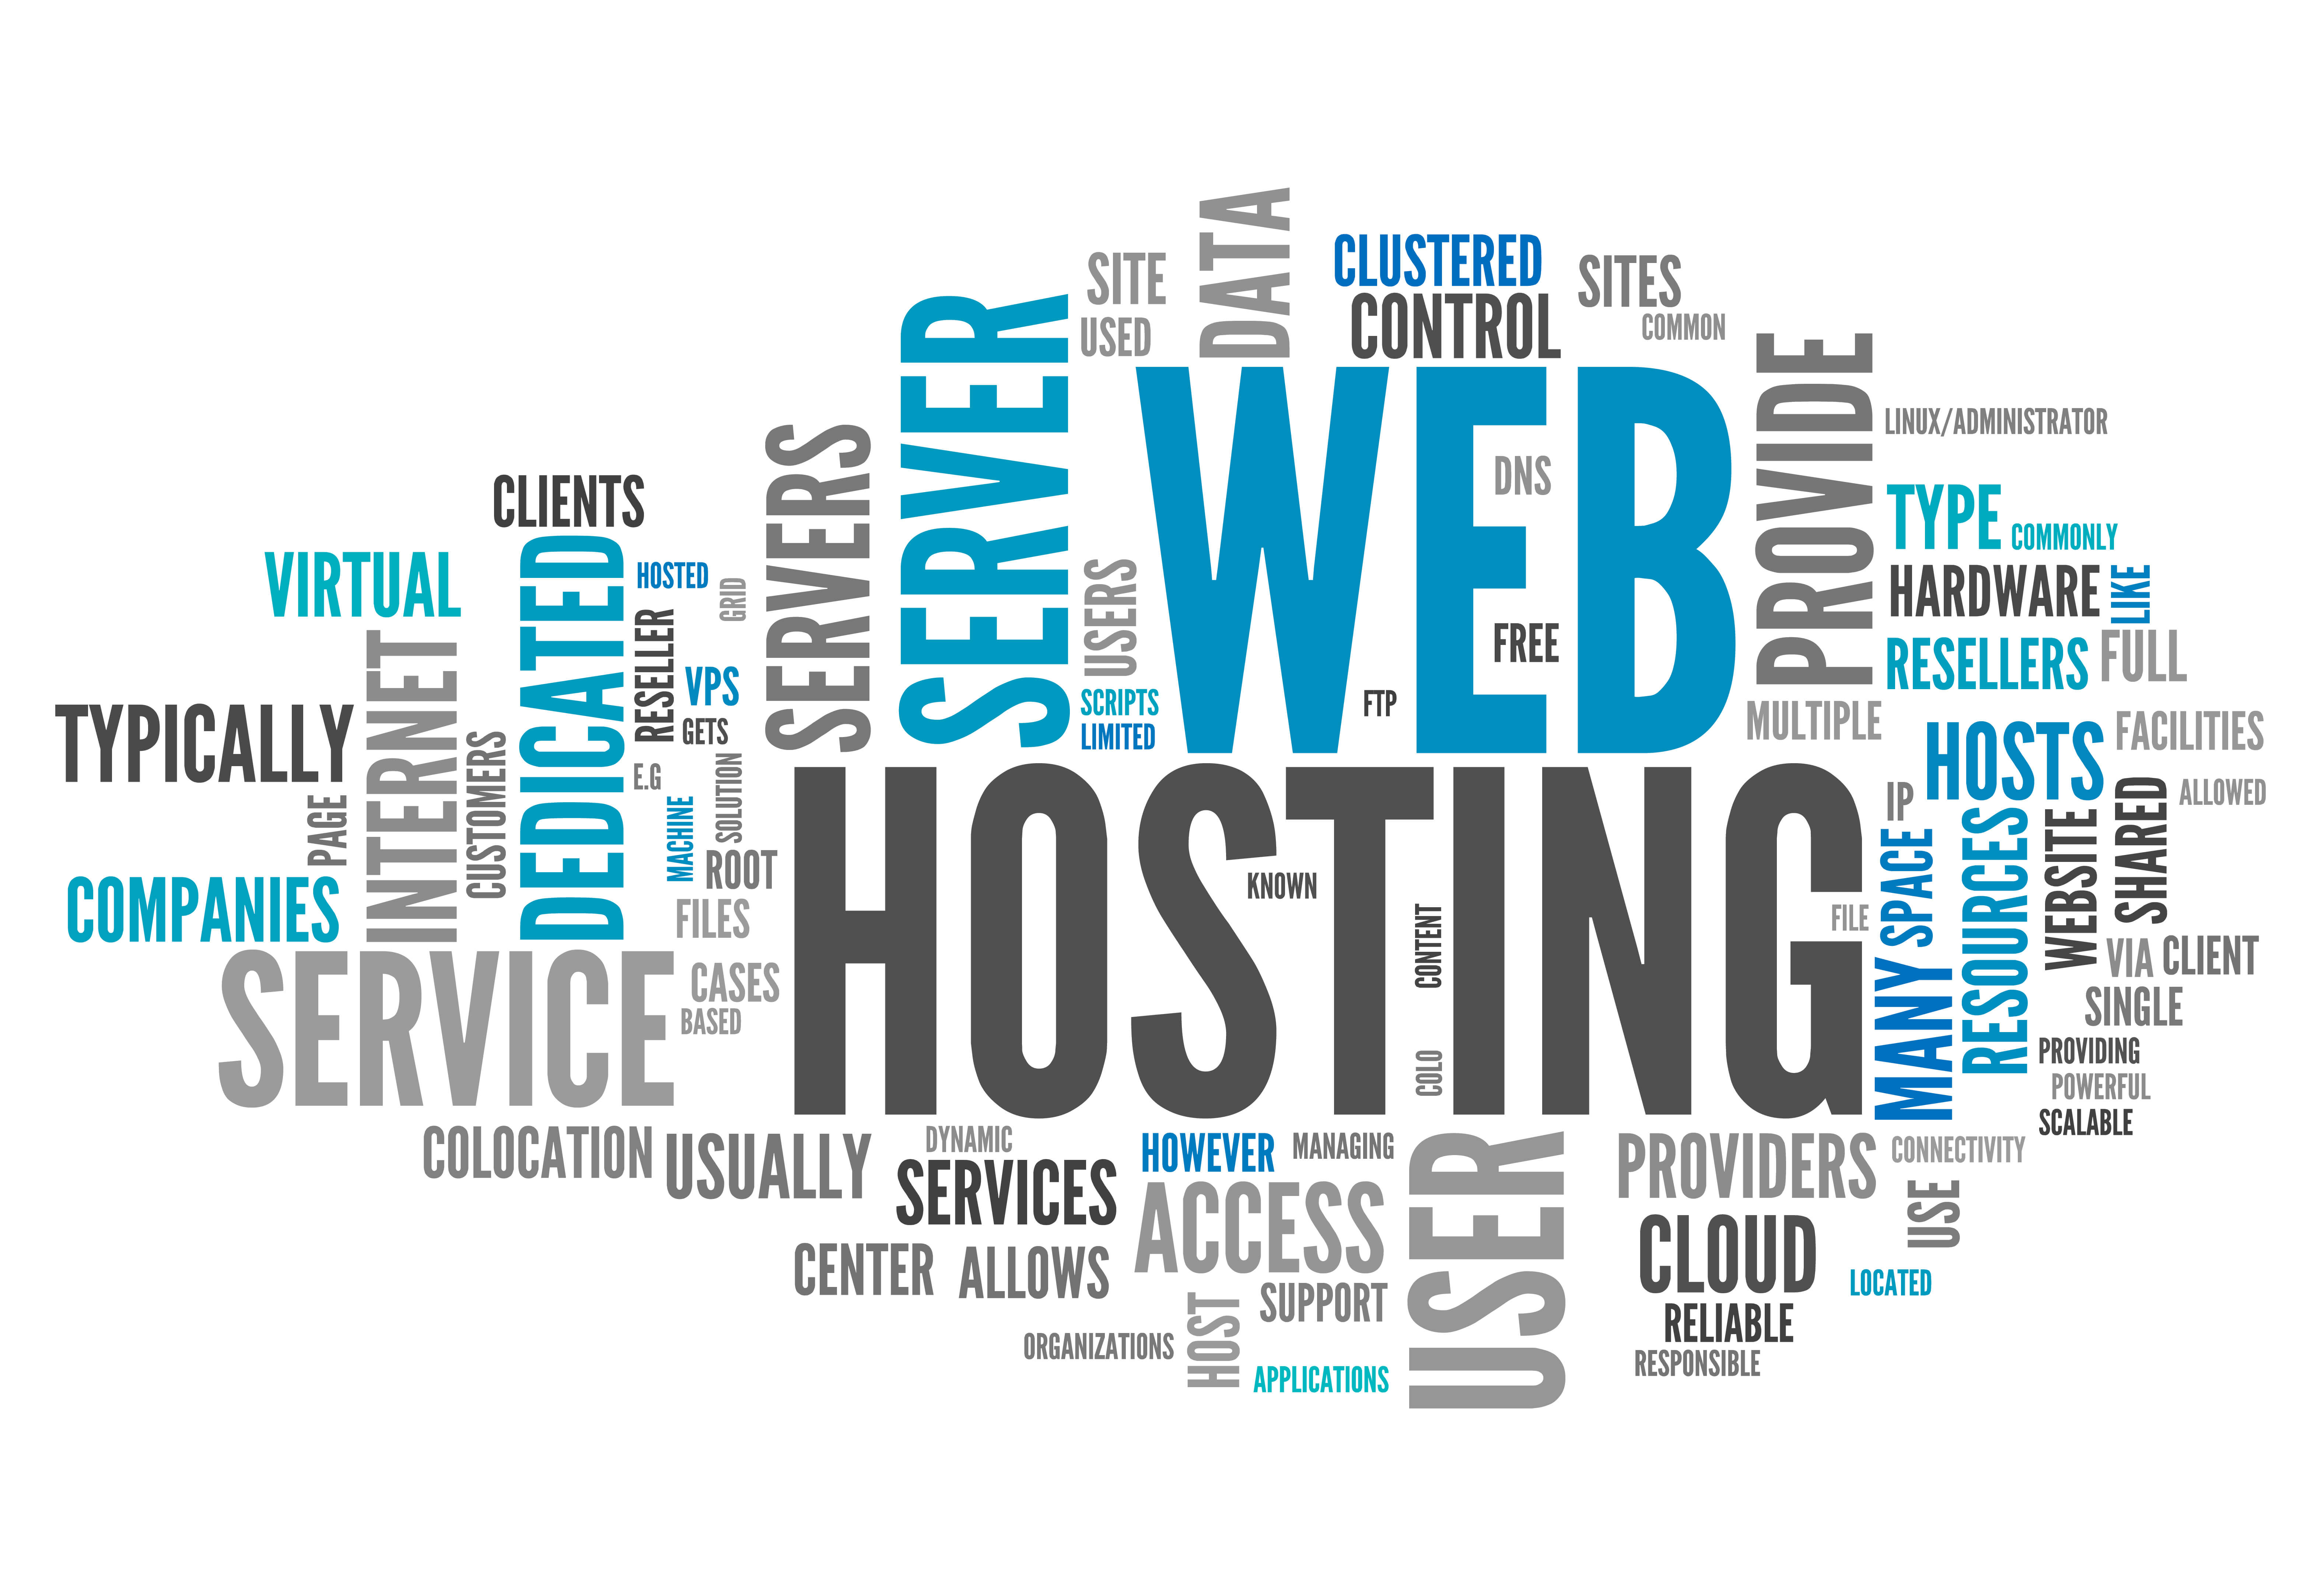 Web hosting is a booming industry right now and you might want to be a part of it. You can create and develop a web hosting business under your own brand name and with your own conditions. The best way to start a web hosting business is through reseller hosting. Everyone who wants to create a website can be your client. If you intend to establish the web hosting server setup, then this process will take a lot of time and you will also have to invest a lot of money in it. Therefore, the best alternative is to set up your business through reseller hosting. Through reseller hosting, you are leasing the server setup of an existing web hosting company. Now a day's most of the web hosting companies offer white label reseller hosting packages that enable you to create your business website under your own brand name. Through a reseller hosting package, you will get sufficient hosting resources to create your business website. What are the steps involved in starting your web hosting business through reseller hosting? Register The Preferred Domain Name Domain name is the unique identity of your business. It is important to have an impressive and catchy domain name that people can easily remember. Also, choosing the right domain name extension is very important. For example if you are based in UK, you can choose a domain name like webhostingprovider.co.uk instead of .com. Brainstorm yourself with domain name ideas and take some time with this step because you are not going to register the domain name again and again. Once your domain name is finalized, you can register it from the same web hosting company from where you are going to purchase the reseller hosting package. Choose The Right Reseller Hosting Plan You will see that there are many web hosting companies that provide reseller hosting. Before you sign up with any web hosting company, make sure to check the plan specifications and prices. Compare many reseller hosting plans before making the final decision. Initially a basic reseller hosting package will be sufficient for you with 25 GB Web Space and 250 GB Bandwidth. You can start with the basic reseller hosting package and then upgrade the plan as per your business needs. Once your business increases, you can also opt for a high-end dedicated or cloud server. Make sure to read the reviews of the web hosting company online and also check their social media updates; this will give you a fair idea about the reputation and client base of that web hosting company. You can also check for reseller hosting coupon codes online. You might get a discount on the original price of the package J Start Planning Your Own Hosting Packages Once you have registered the domain name and purchased the web hosting, your next step will be setting up your hosting website. Although, you can get the business website designed by a professional designer, you have to yourself think about the web hosting packages that you will be providing your clients. Check out the websites of the web hosting companies and plan your packages accordingly. Try to make your web hosting packages different from the already existing web hosting companies. Step in the customer's shoes and think about what will be needed the most in a web hosting package. Along with the general package specifications, make sure that you are also offering with some freebies and addons. You can offer addons like online marketing, Google Ad Words, website builder etc. for the convenience of the customers. Setting up the payment gateways is also an important aspect. Make sure that you are proving your customers with flexible payment options like PayPal, debit card, credit card, net banking etc. Reseller hosting makes things easy for you and you can start your web hosting business within a short span of time. You can rely on the web hosting company for providing support for your issues and your customer issues. Once your web hosting business website is ready, you can go ahead and promote it and establish your web hosting business.